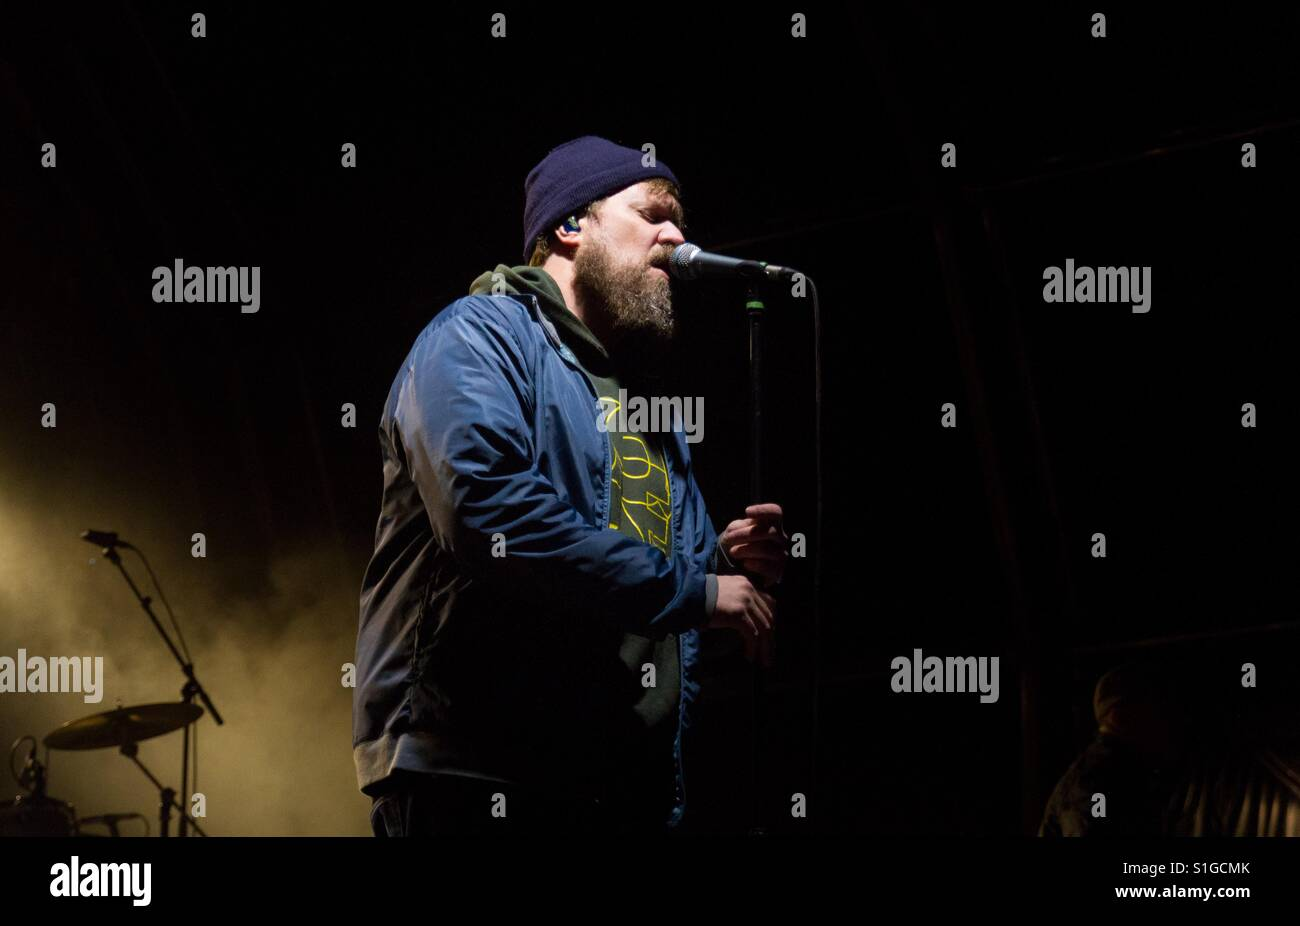 John grant playing at the end of the road festival - Stock Image